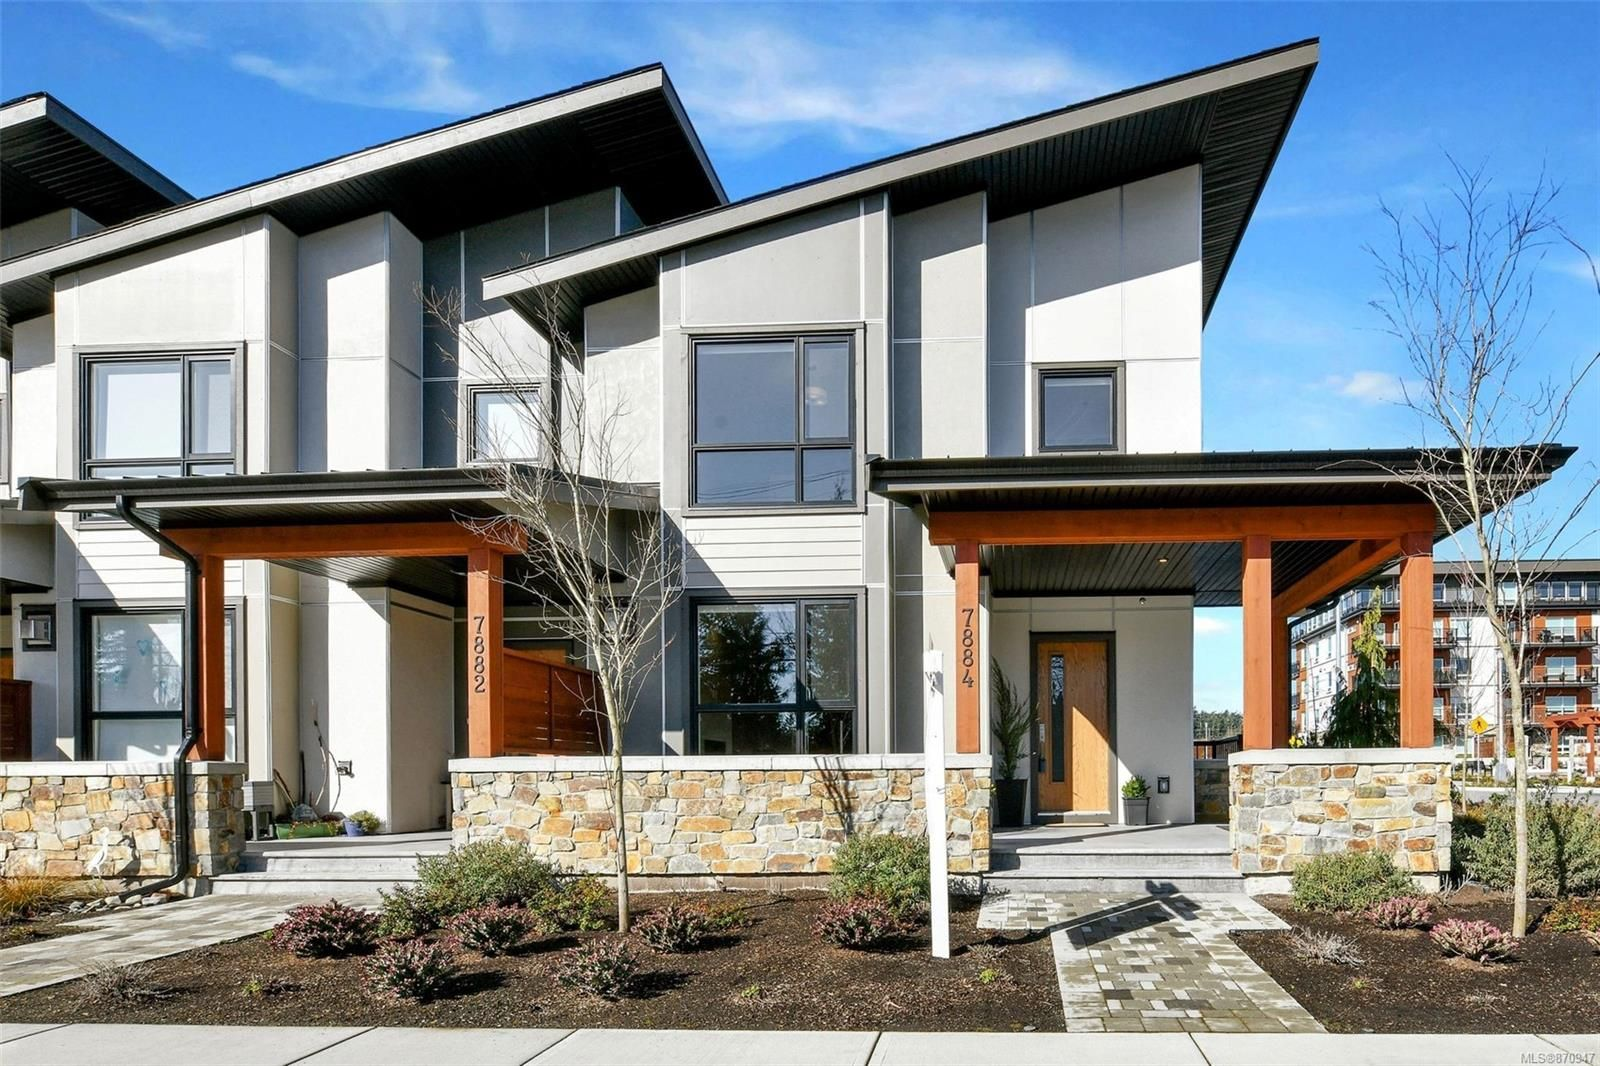 Main Photo: 7884 Lochside Dr in : CS Turgoose Row/Townhouse for sale (Central Saanich)  : MLS®# 870947